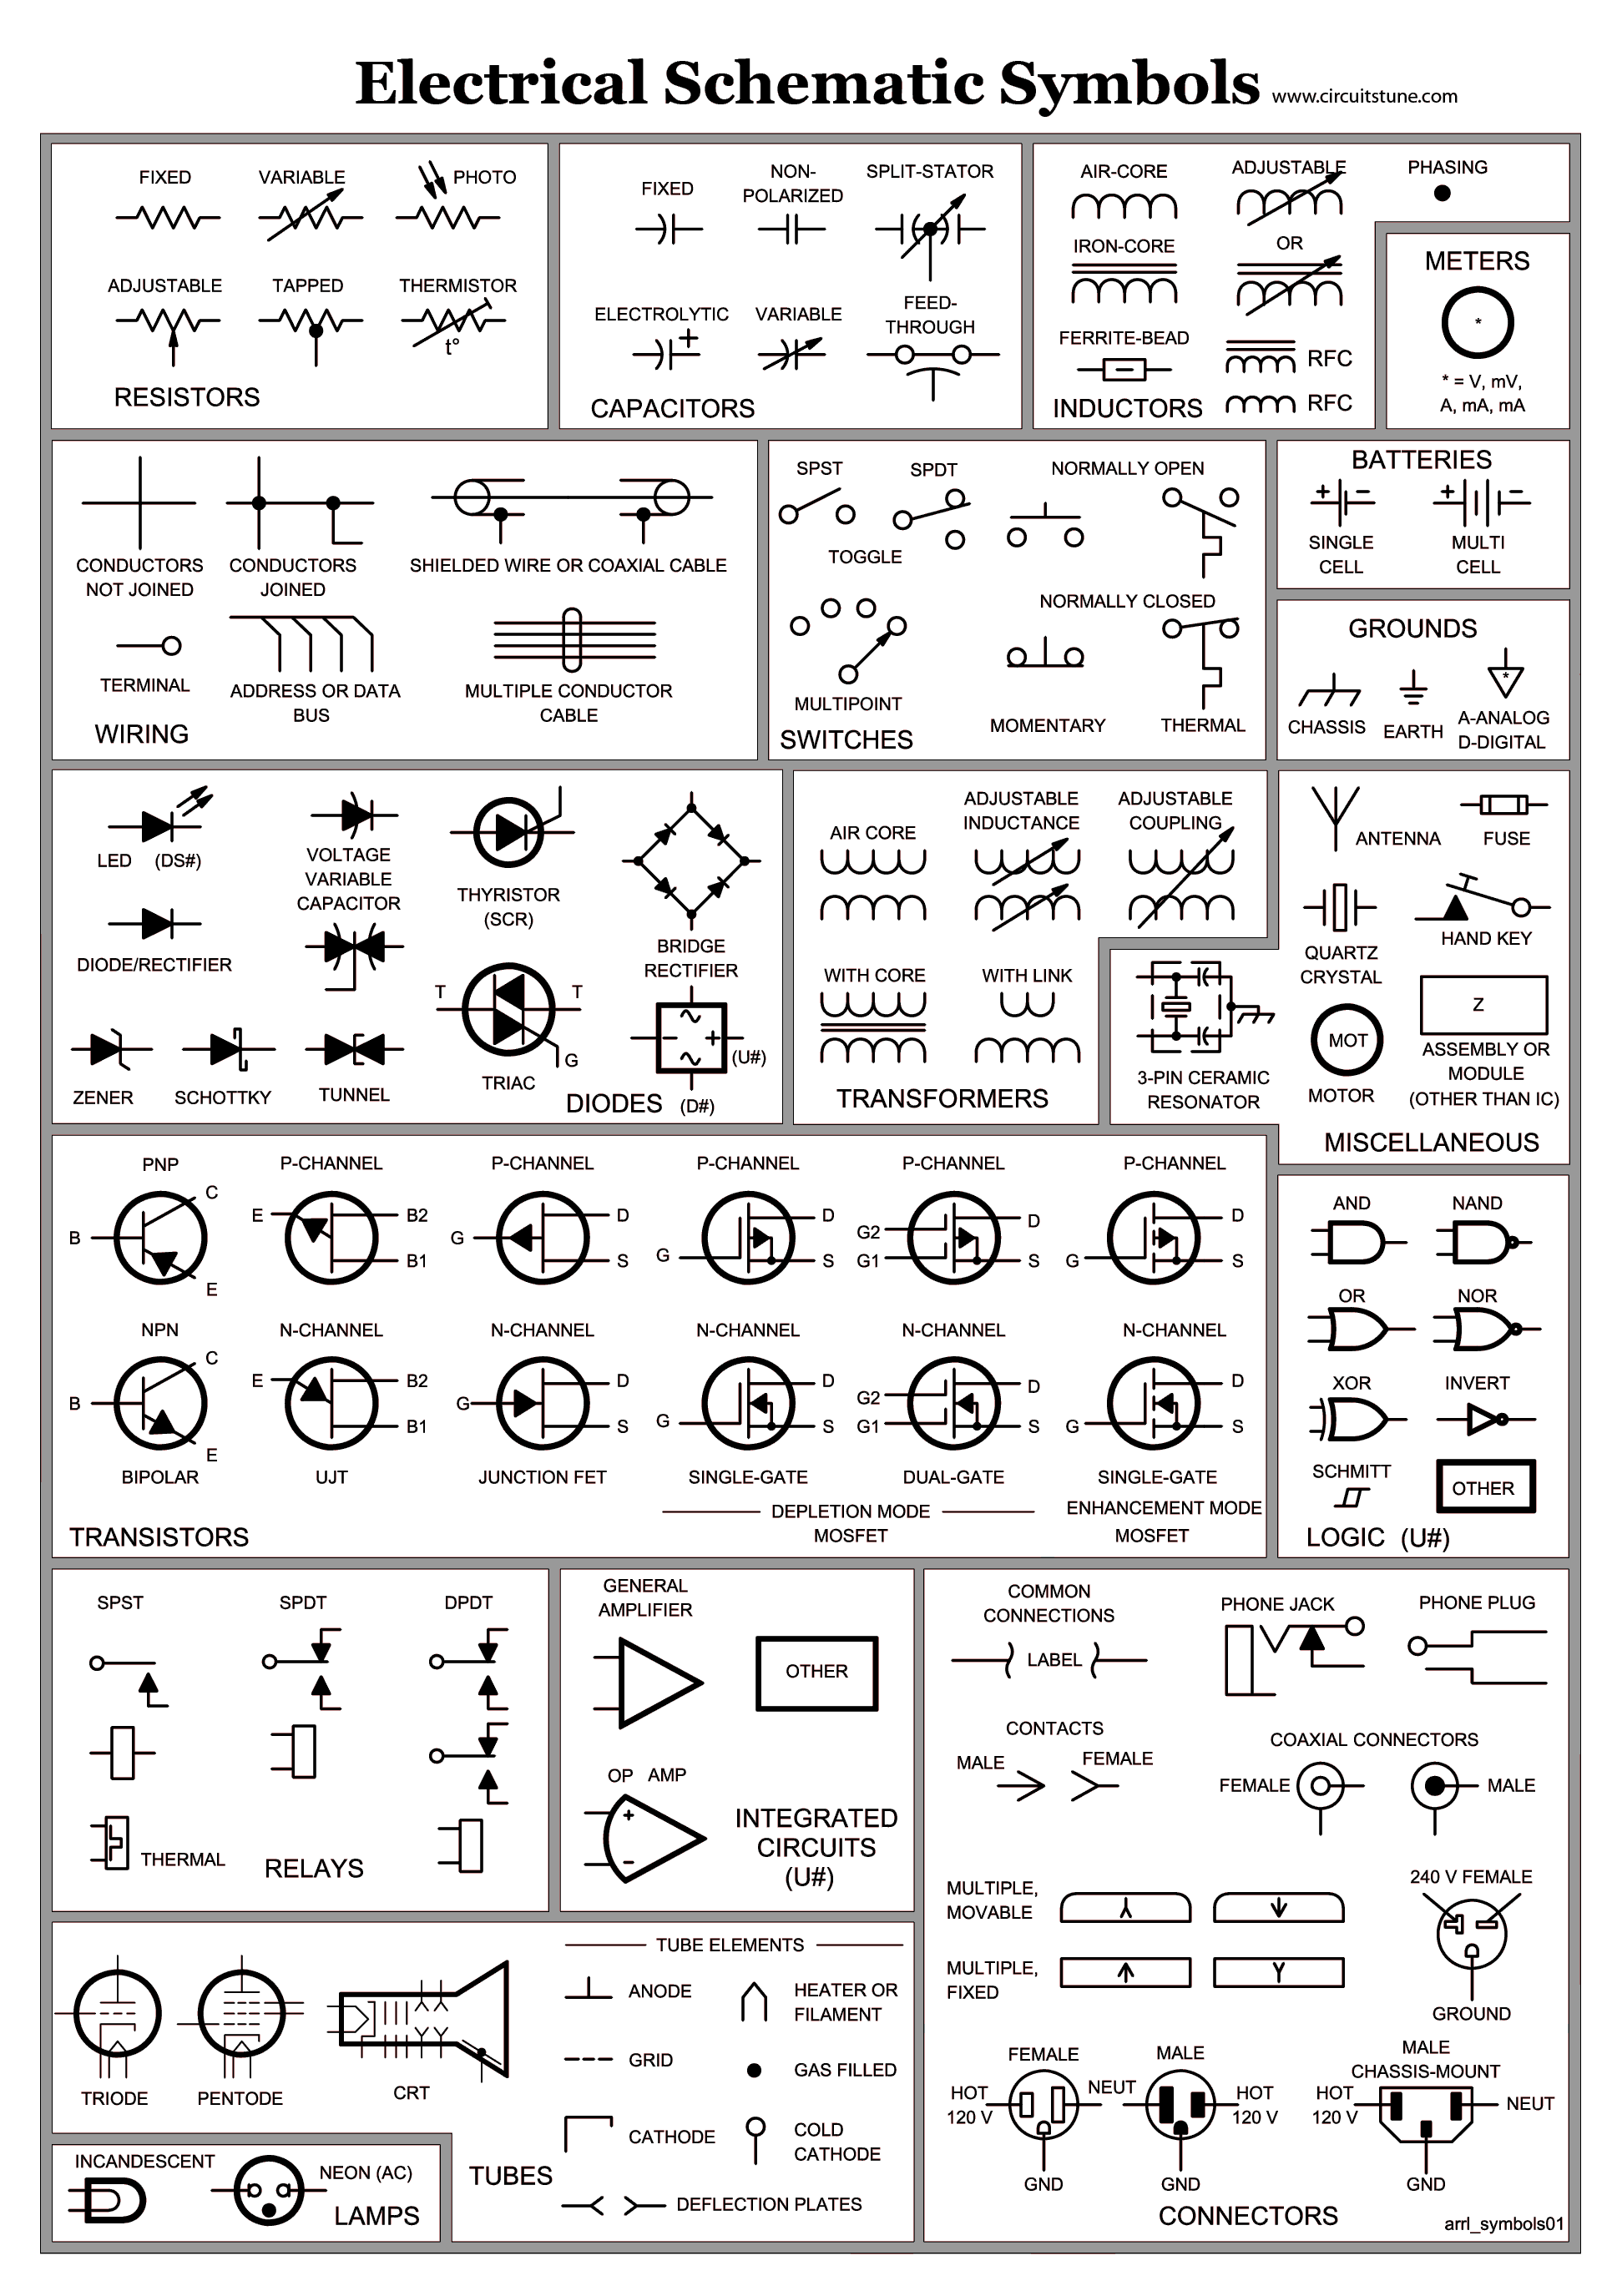 electrical schematic symbols skinsquiggles pinterest rh pinterest com engineering flow diagram symbols engineering drawings symbols pdf